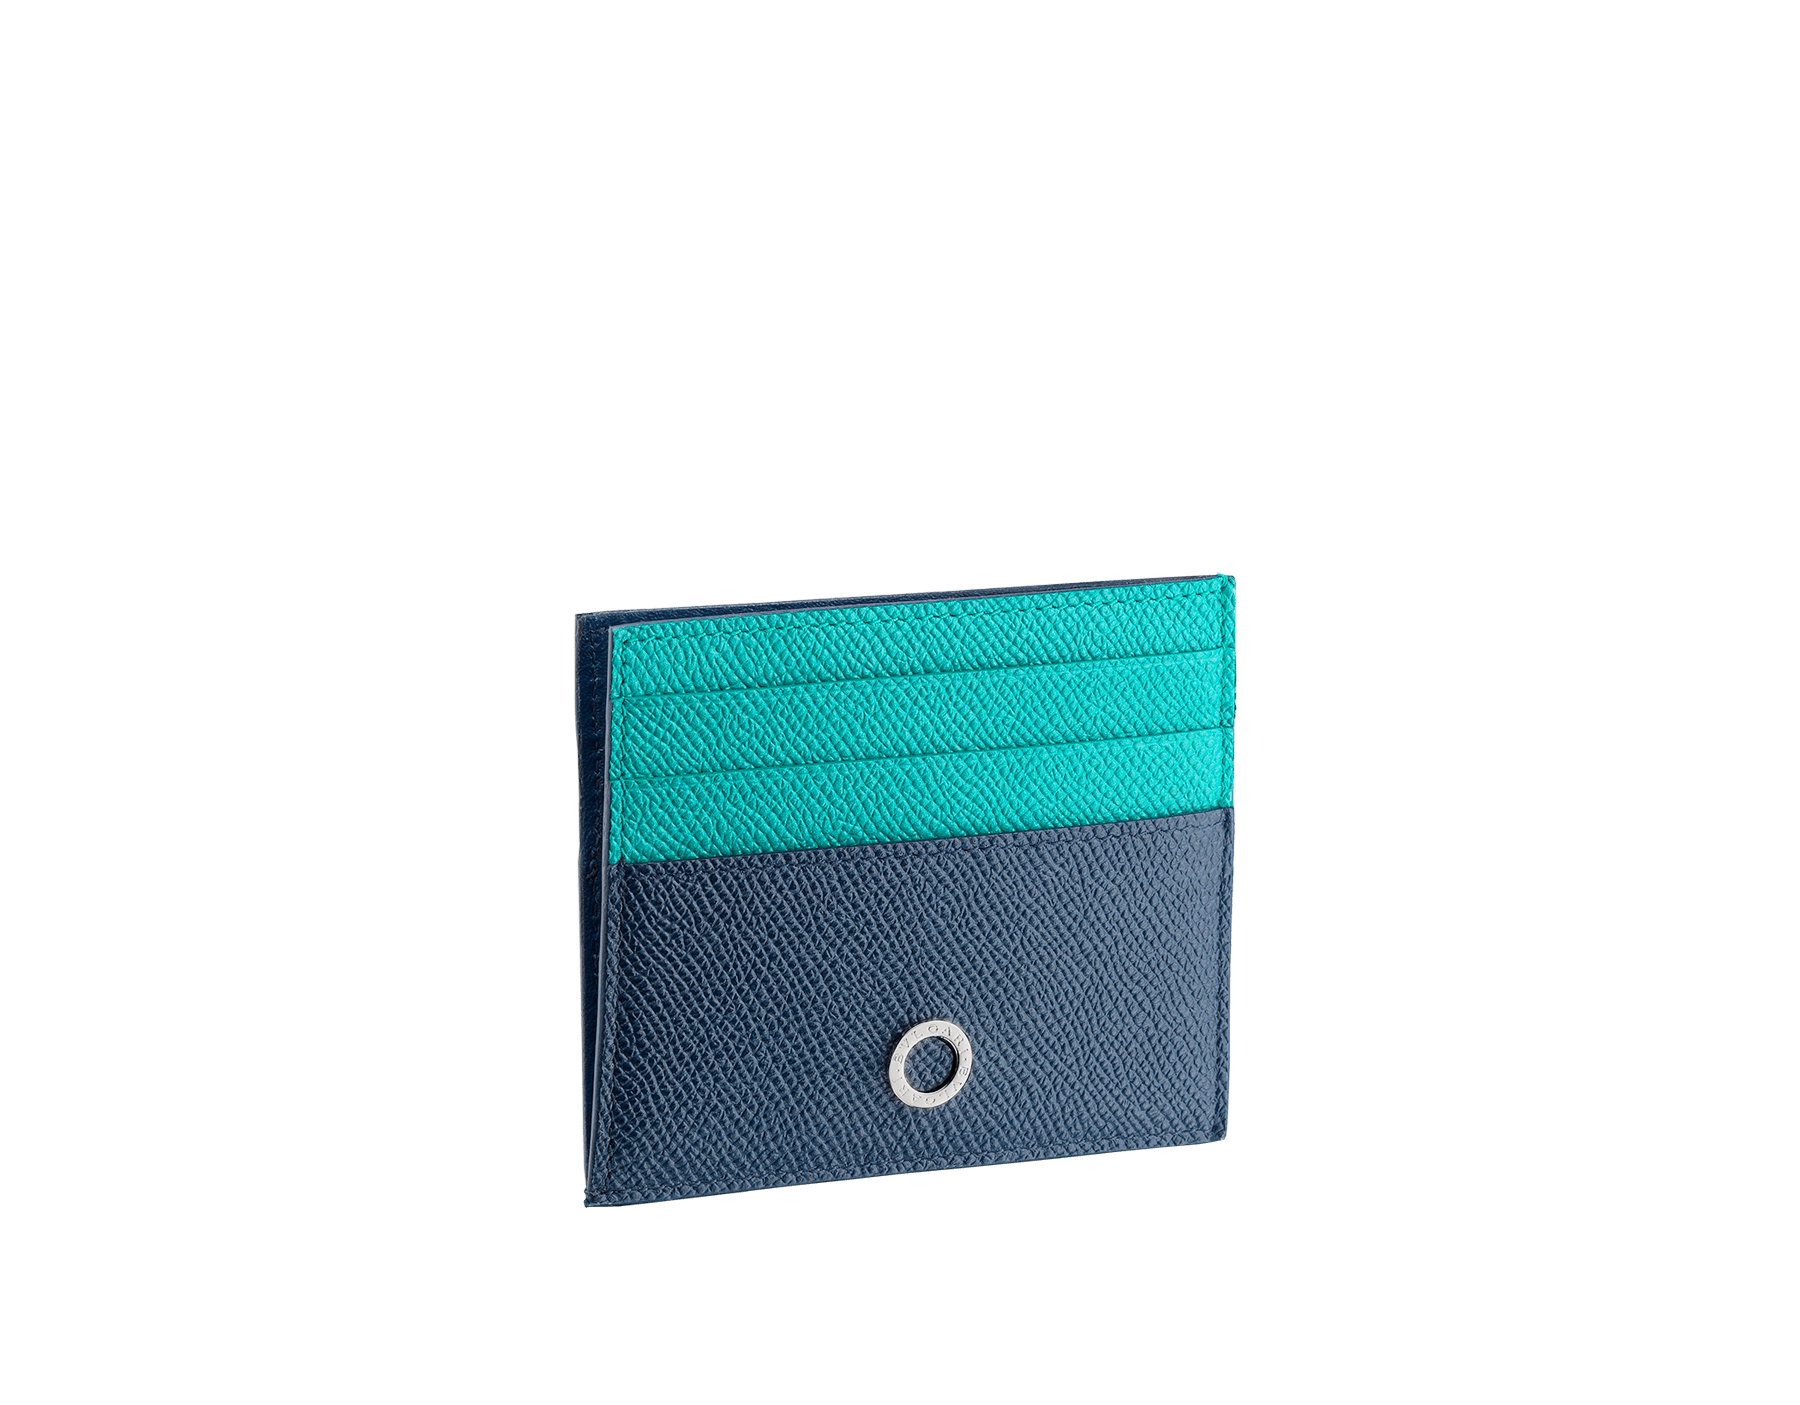 BVLGARI BVLGARI open credit card holder in denim sapphire and tropical tourquoise grain calf leather and black nappa lining. Iconic logo décor in palladium plated brass. 288311 image 1